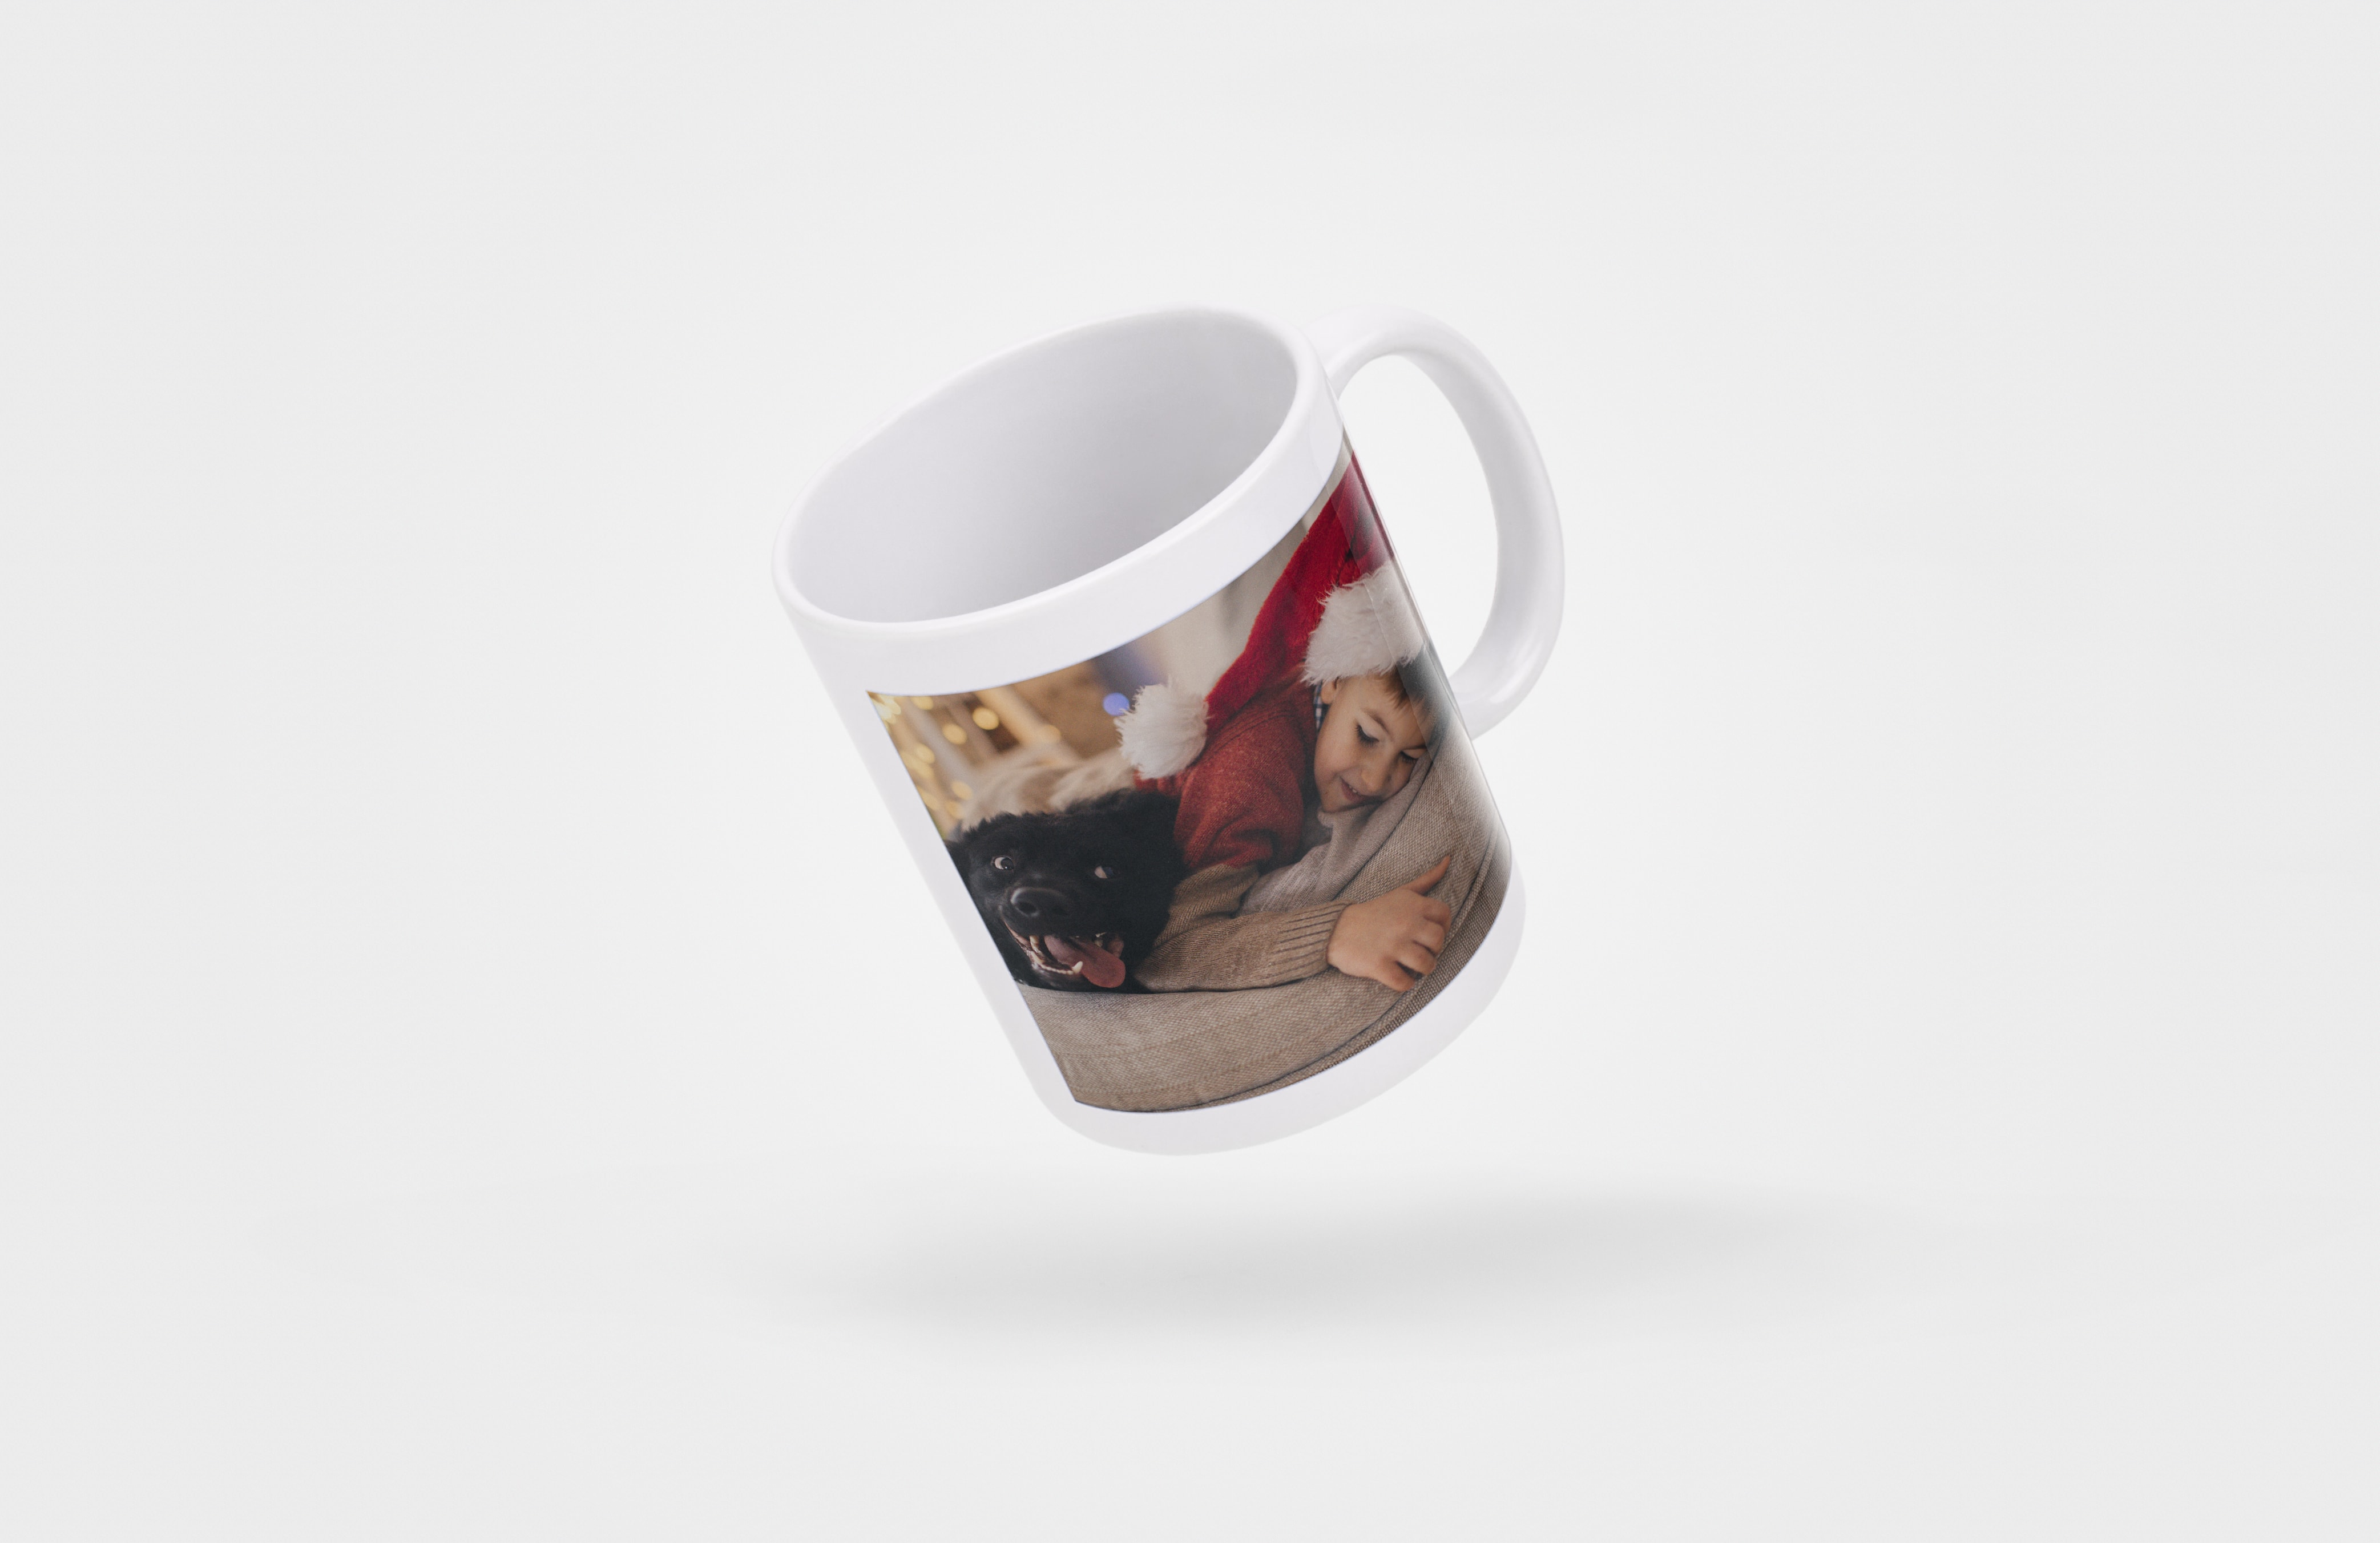 : A photo mug with an image of a little boy in a Santa hat lying on the sofa with his dog